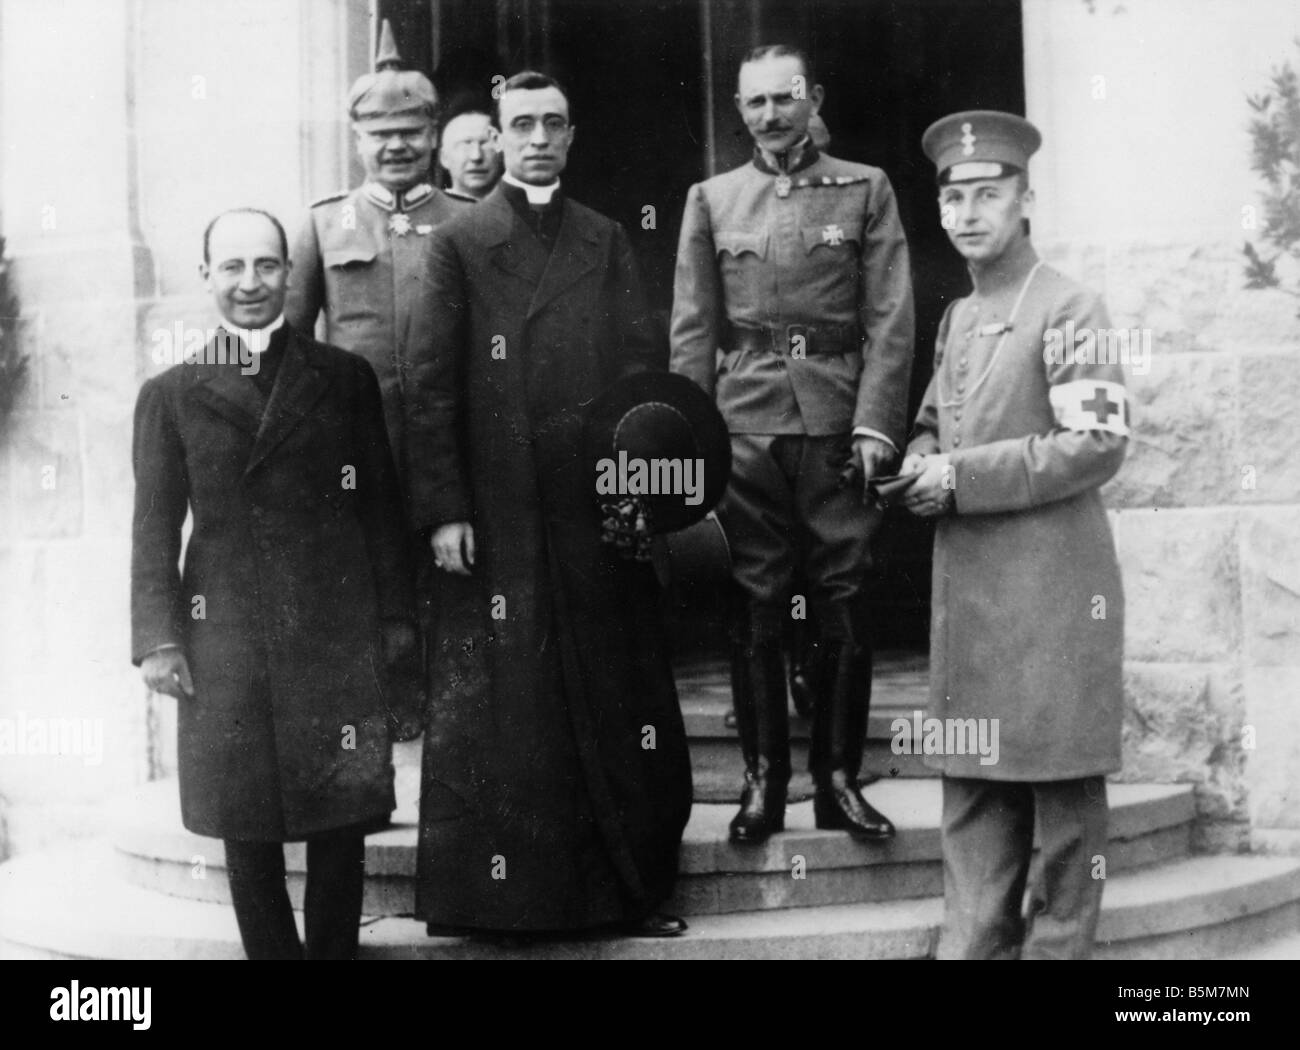 1IT 155 F1917 E Legate Pacelli in Bad Kreuznach 1917 Pius XII Pope 1939 58 before Eugenio Pacelli 1876 1958 Kreuznach - Stock Image